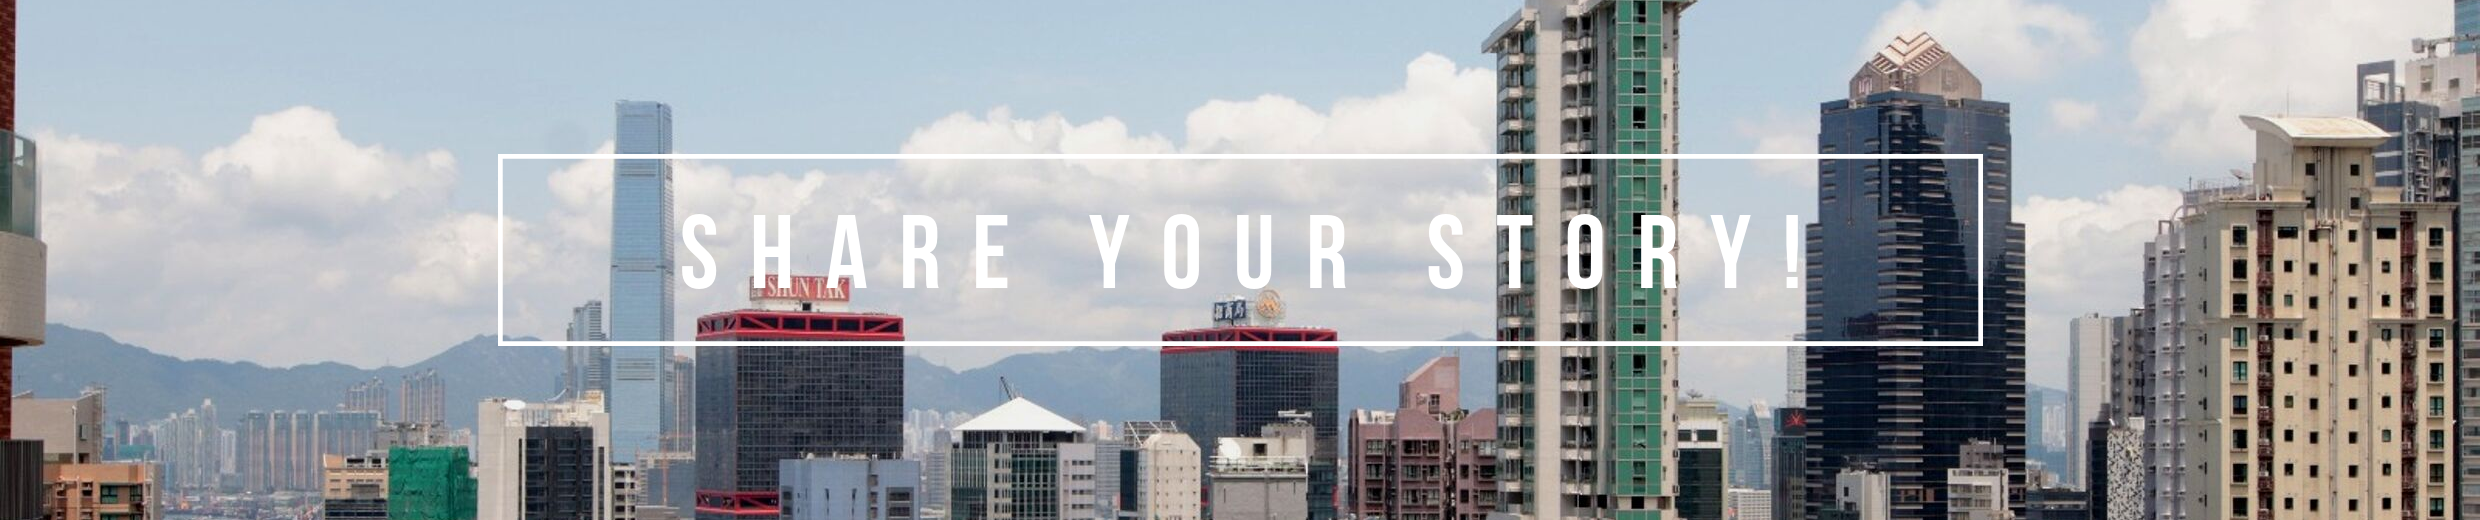 Image of a city with the title 'Share Your Story' over it